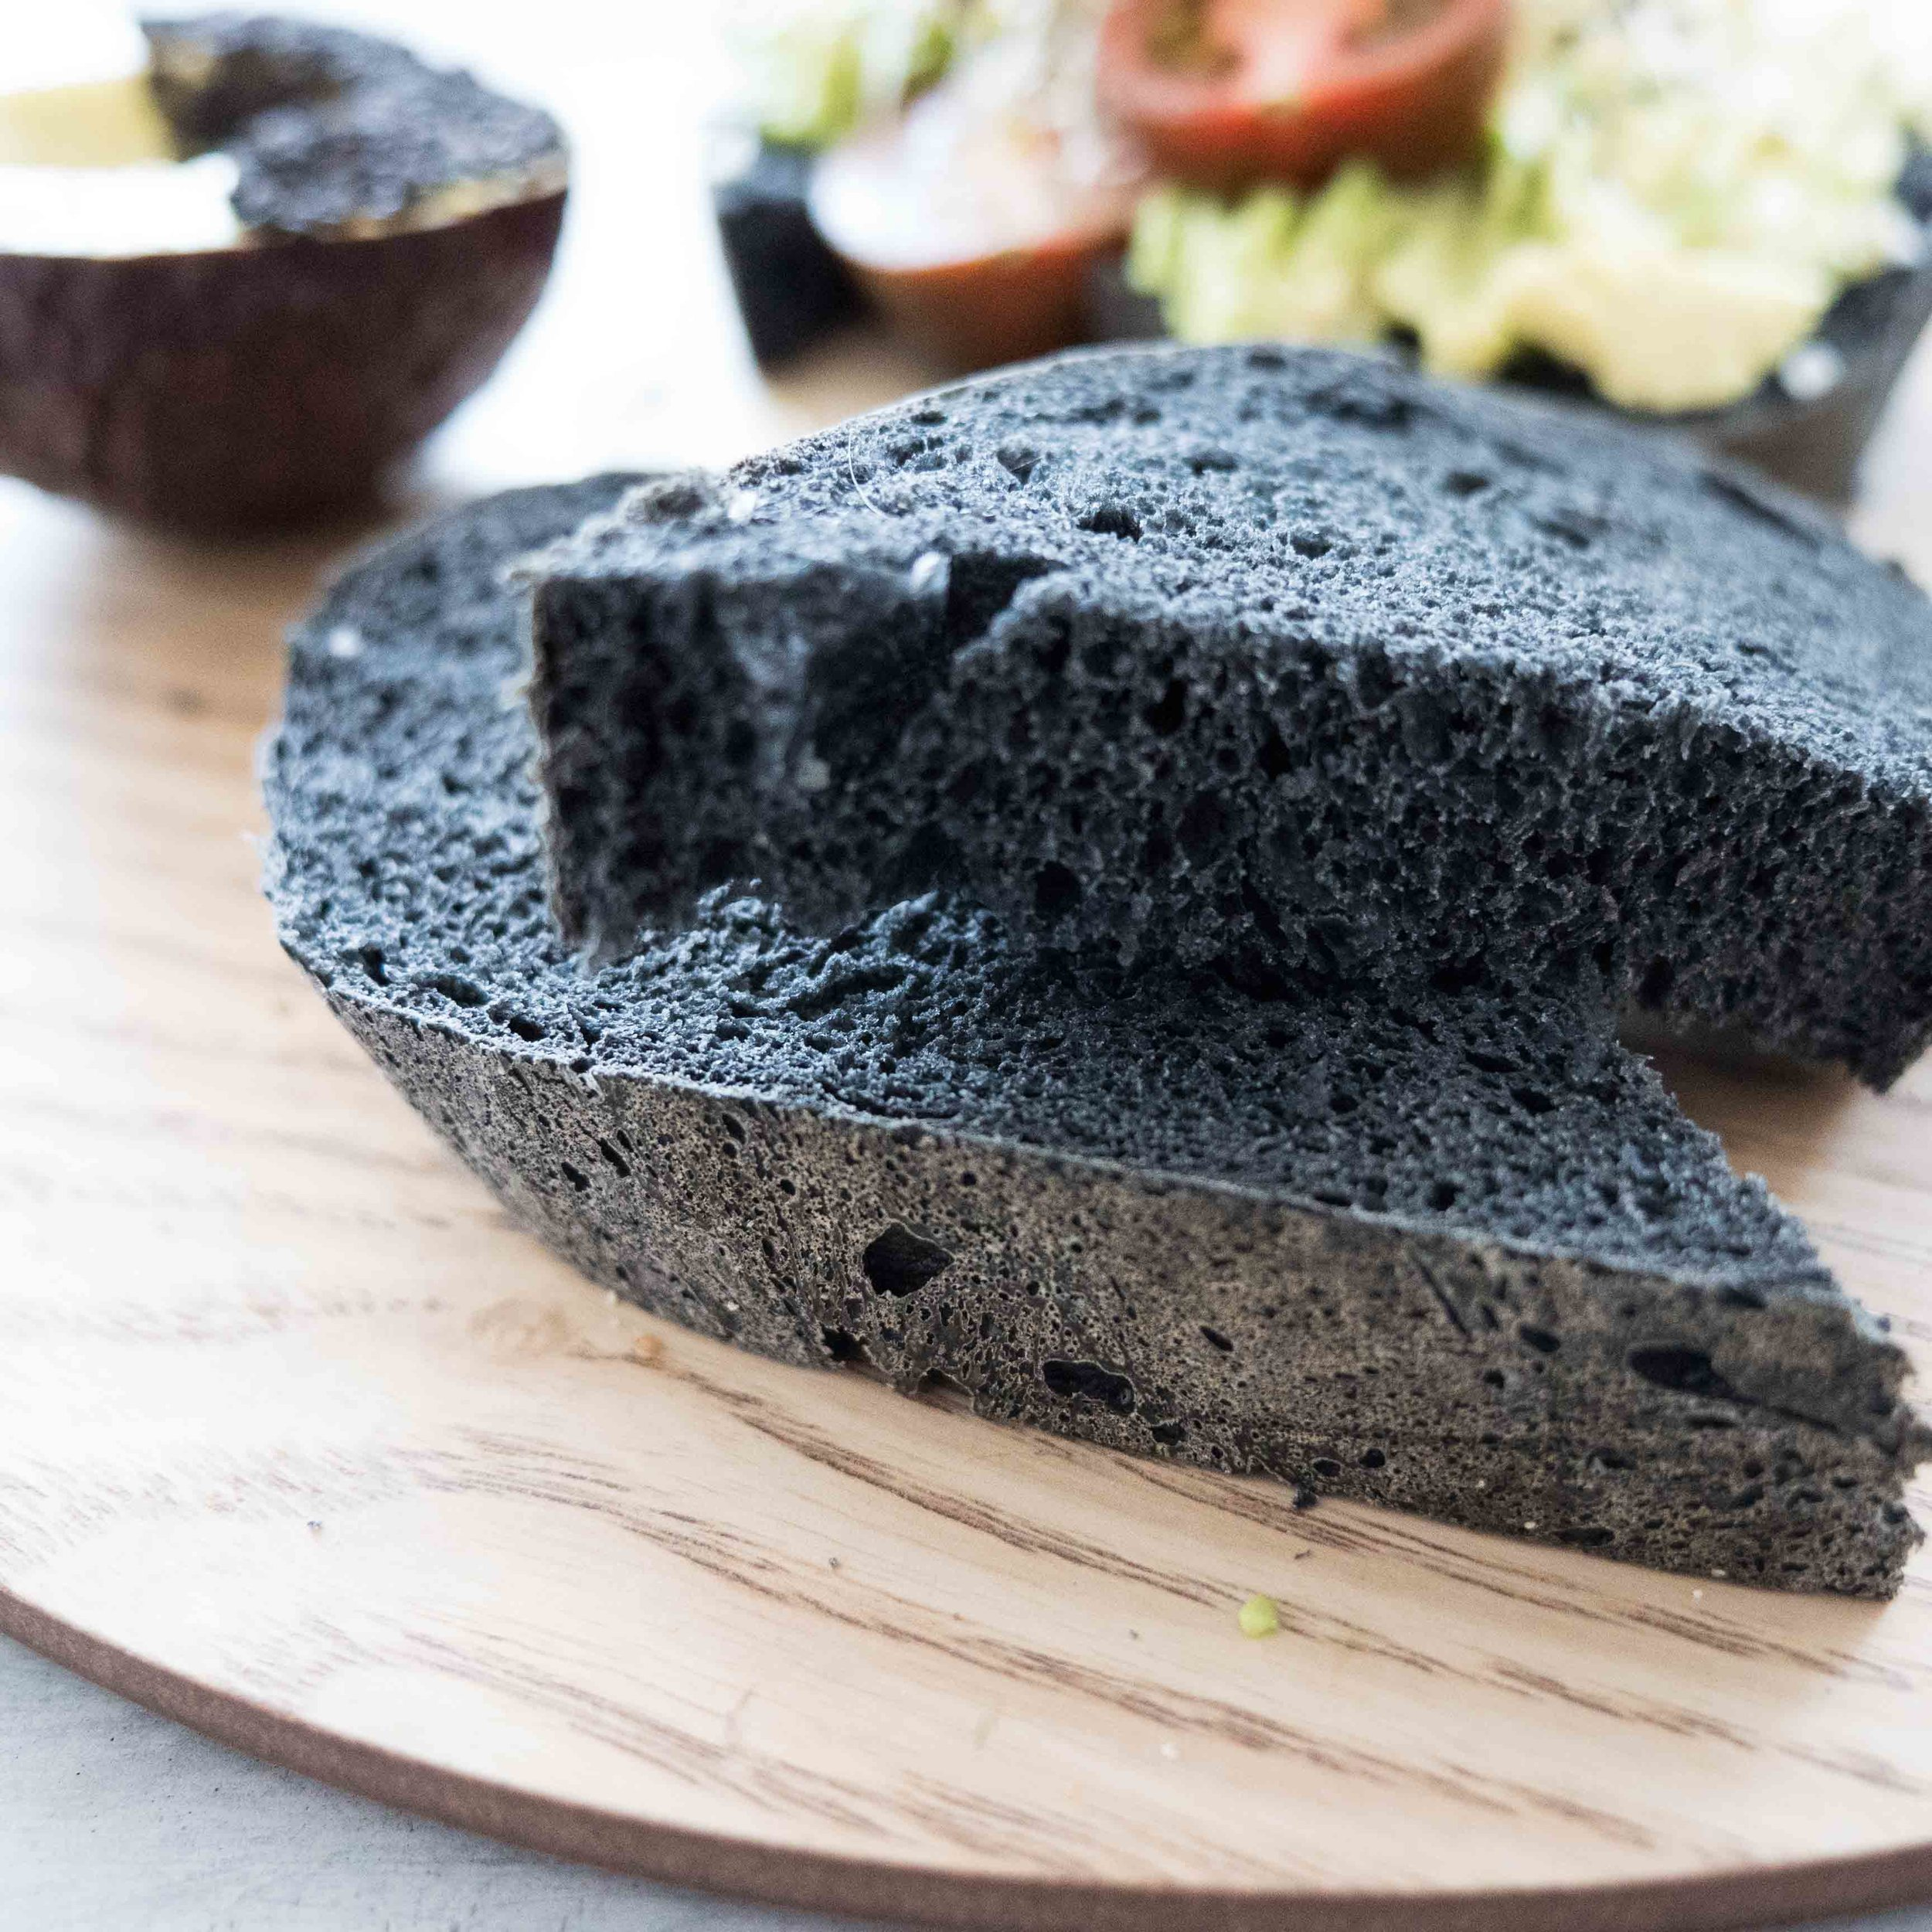 Charcoal bread made in the Thermomix